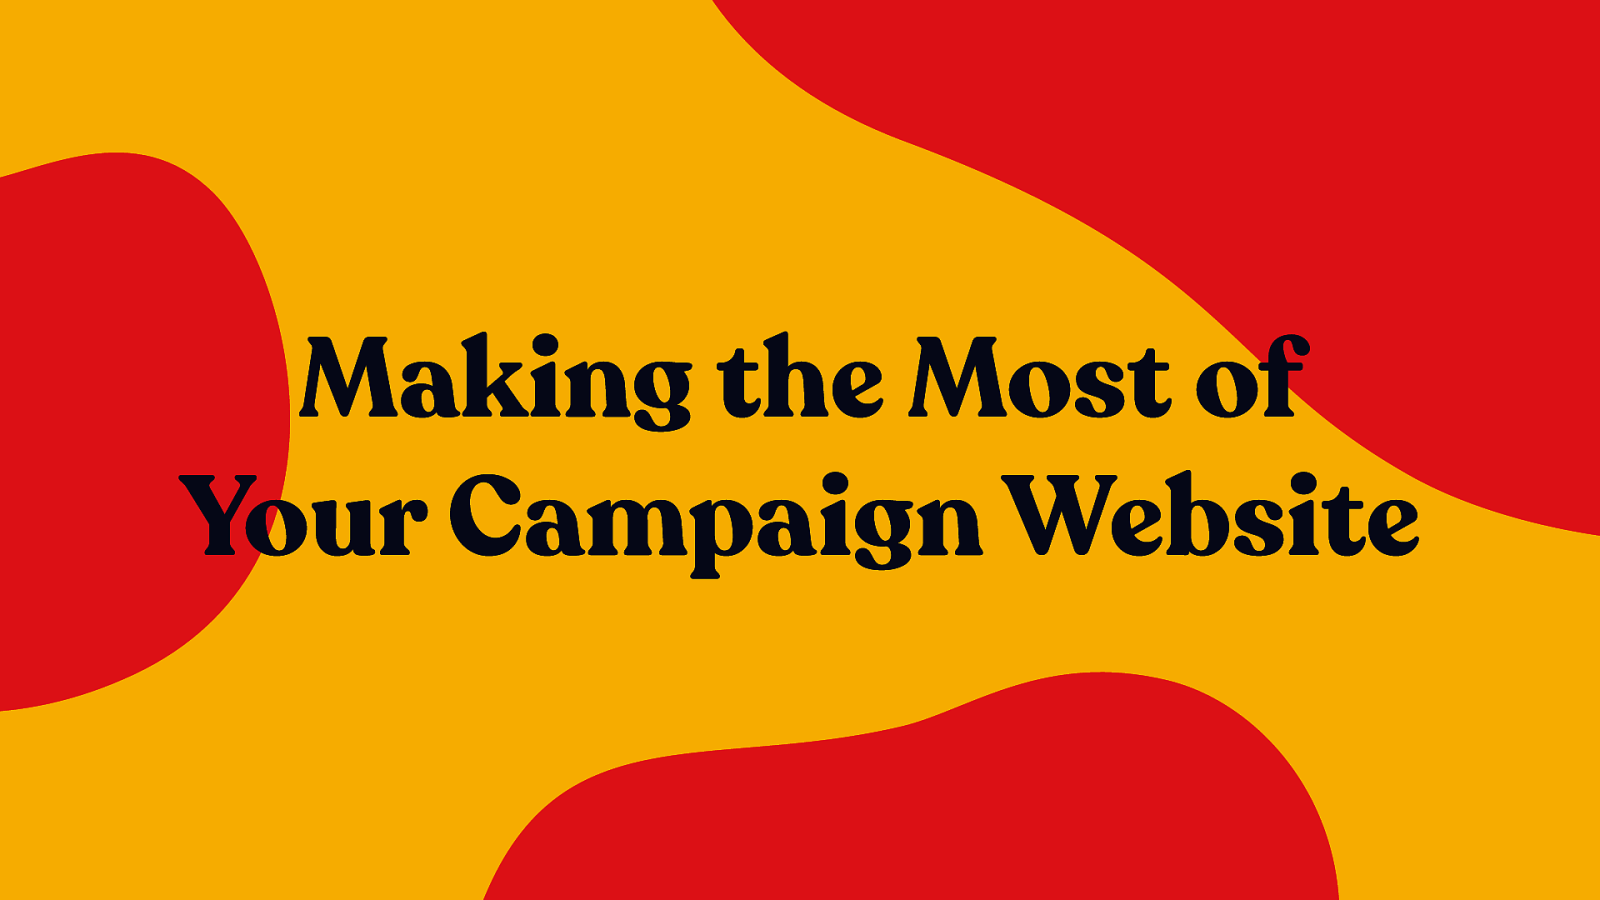 Making the Most of Your Campaign Website